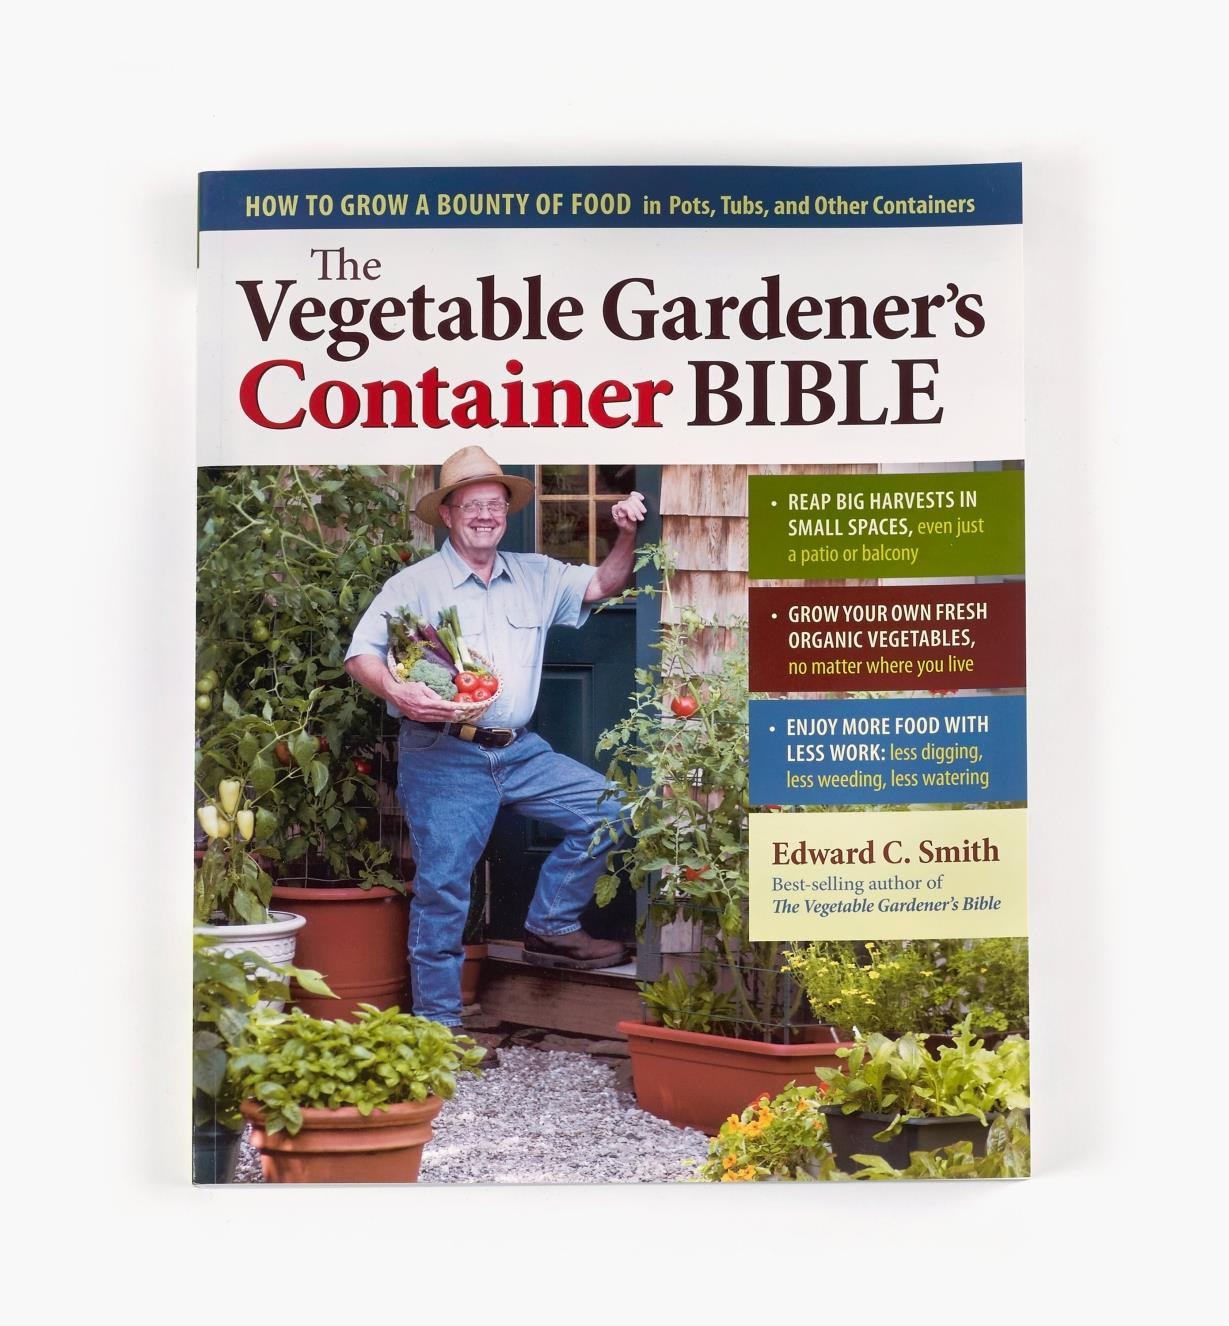 LA949 - The Vegetable Gardener's Container Bible